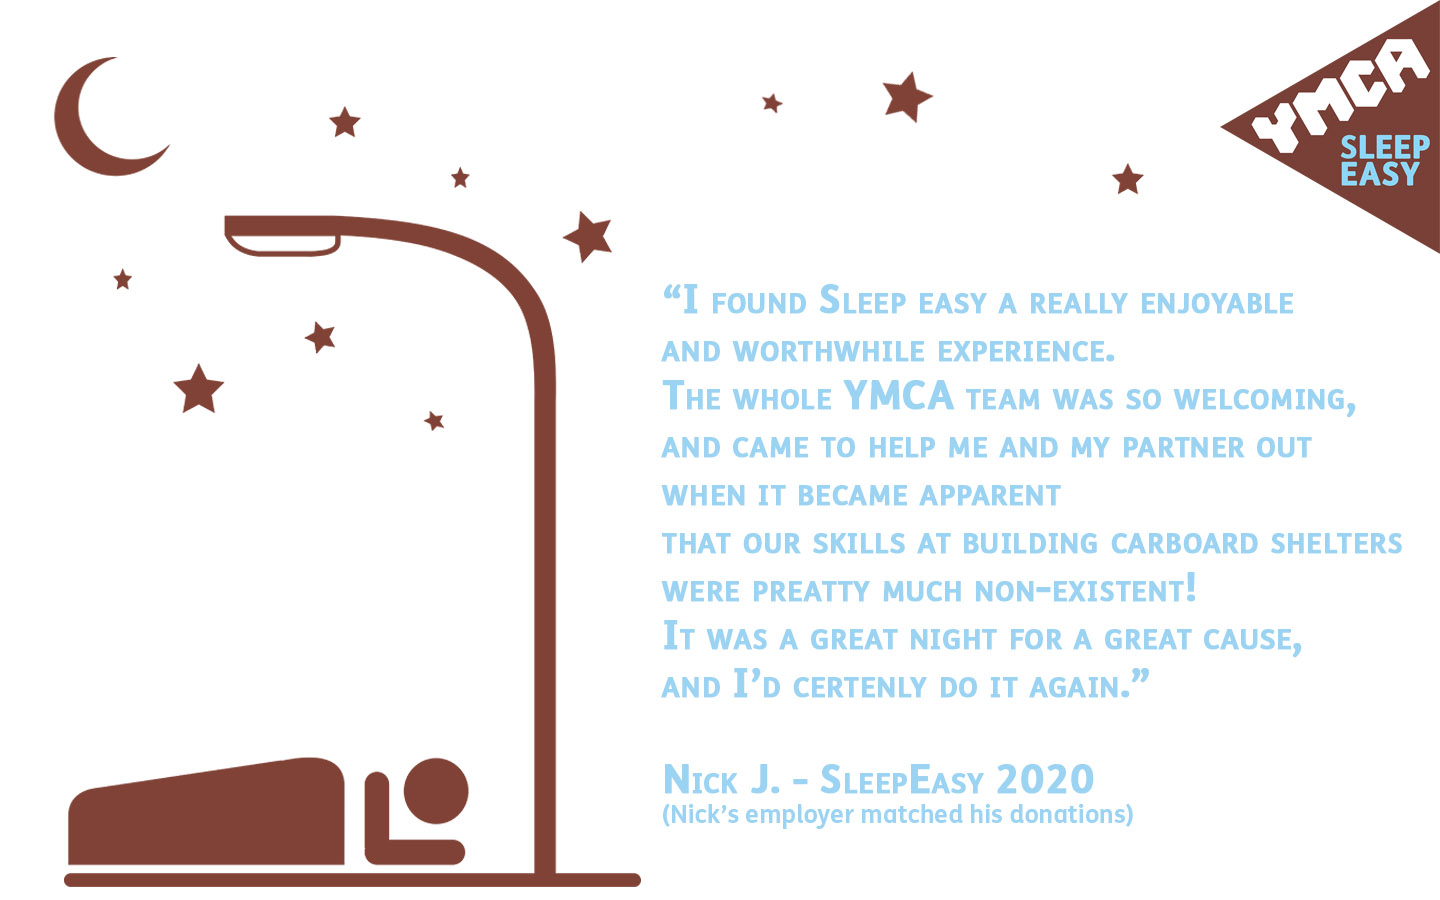 Sleep Easy 2020 challenge